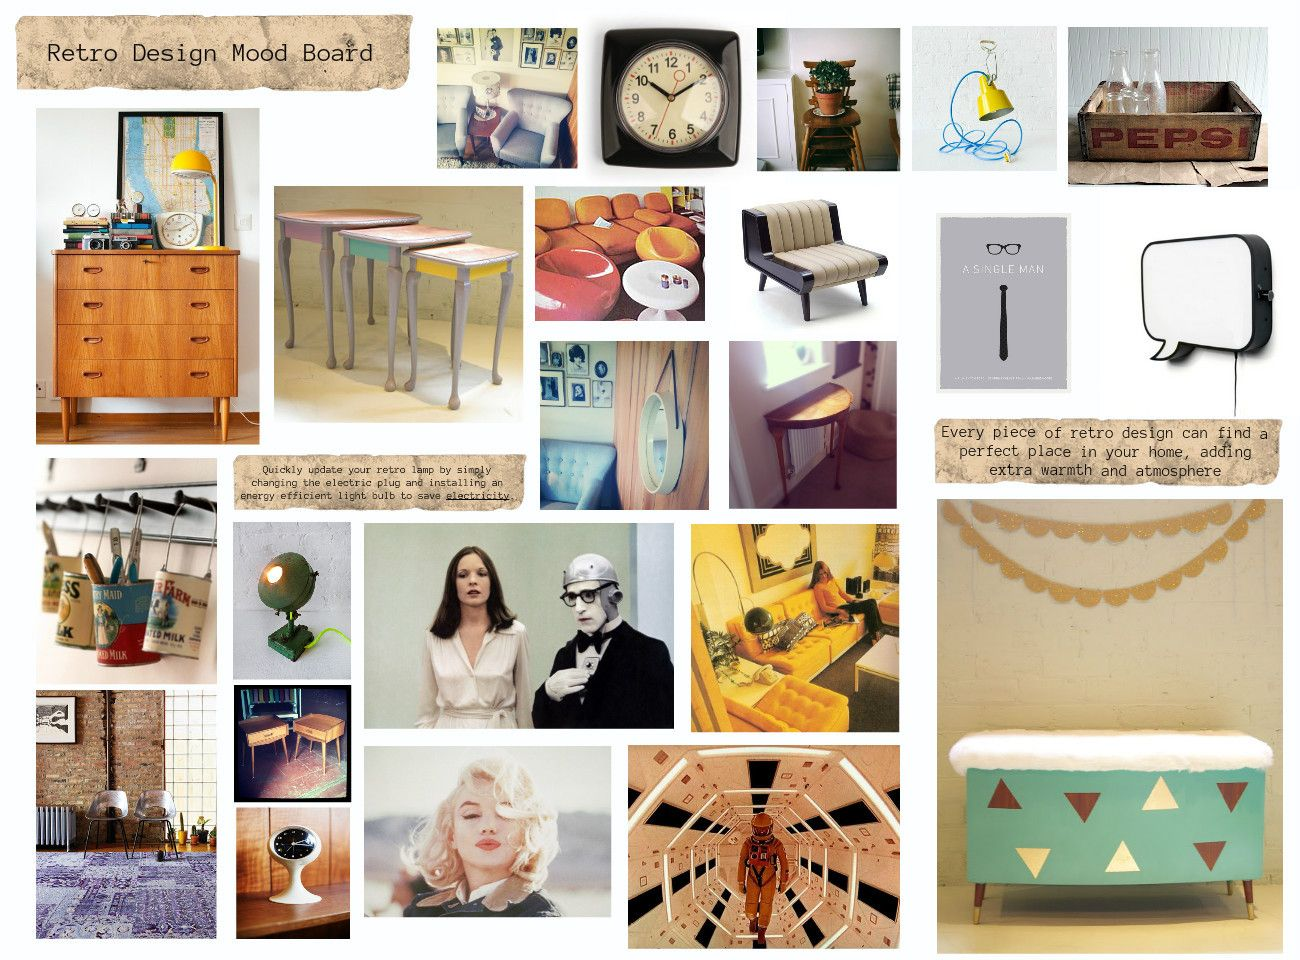 Pin by Mrs Gallacher on Mood Boards   Mood boards, Retro ...